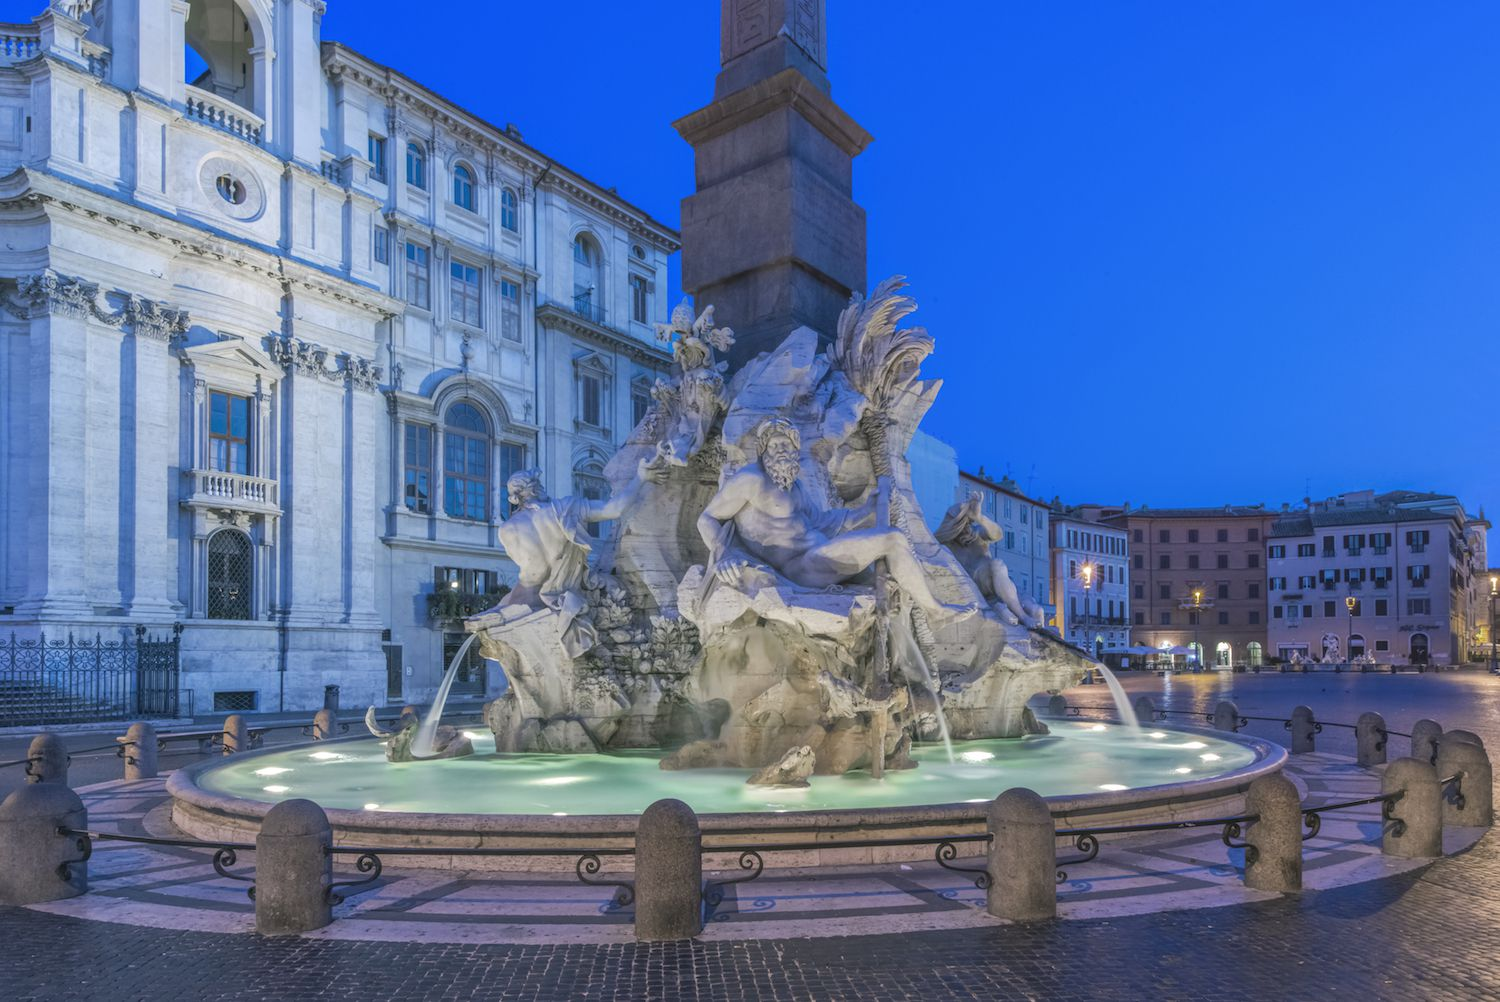 Walking Tour of Piazza Navona in Rome